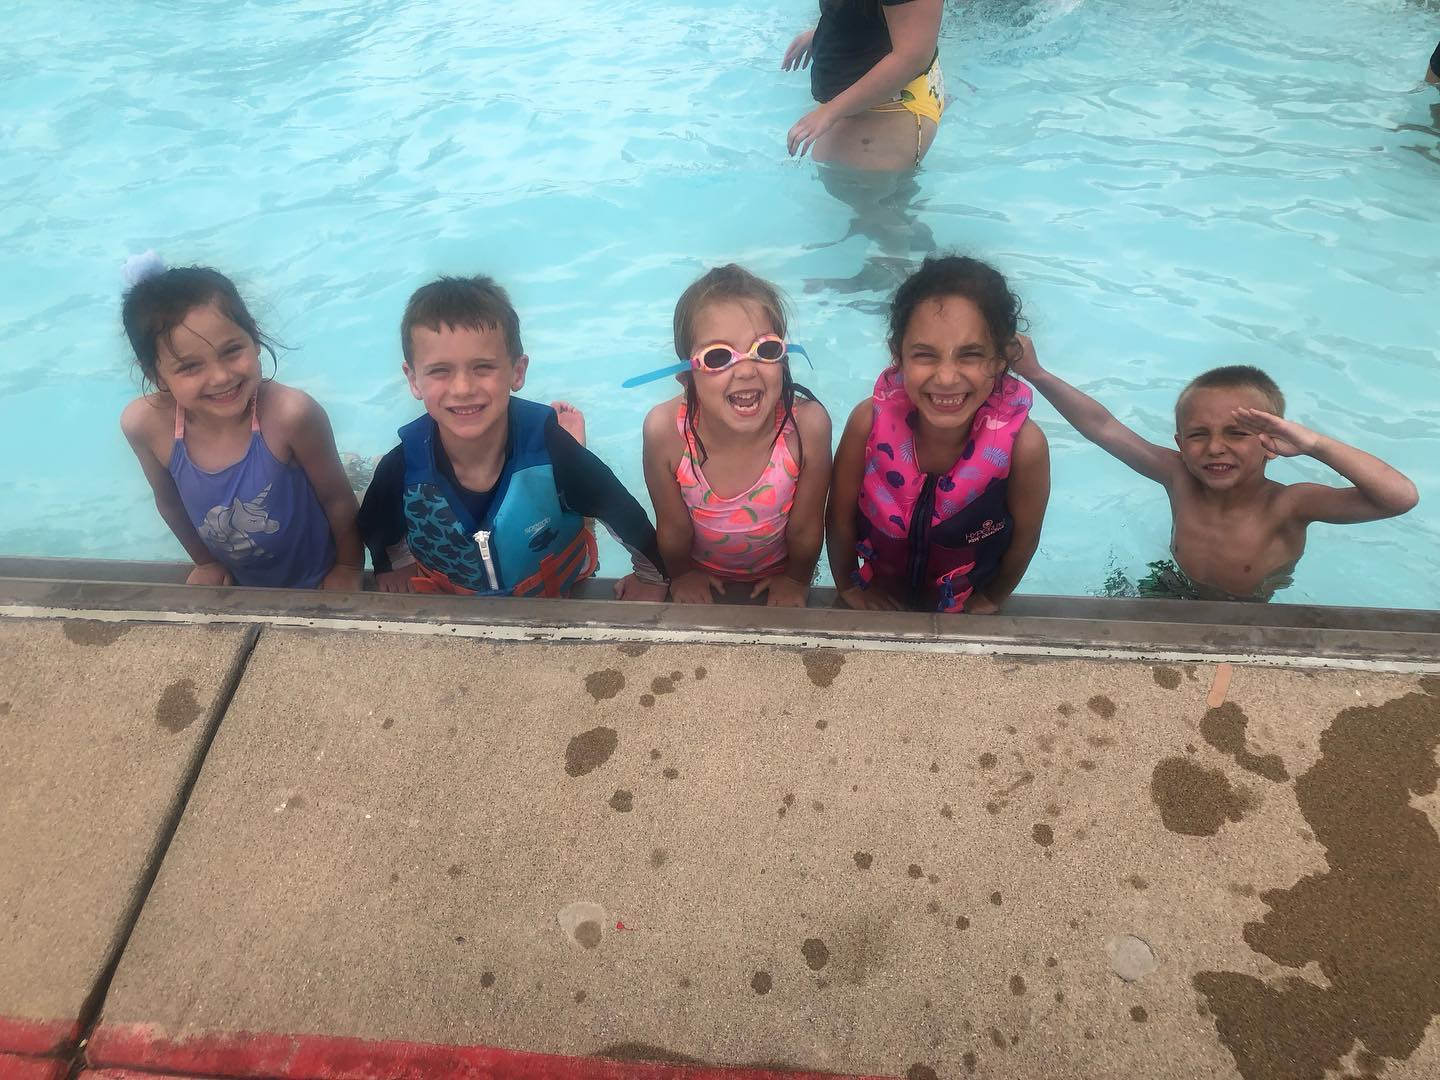 Water Play & WHY We Love It!